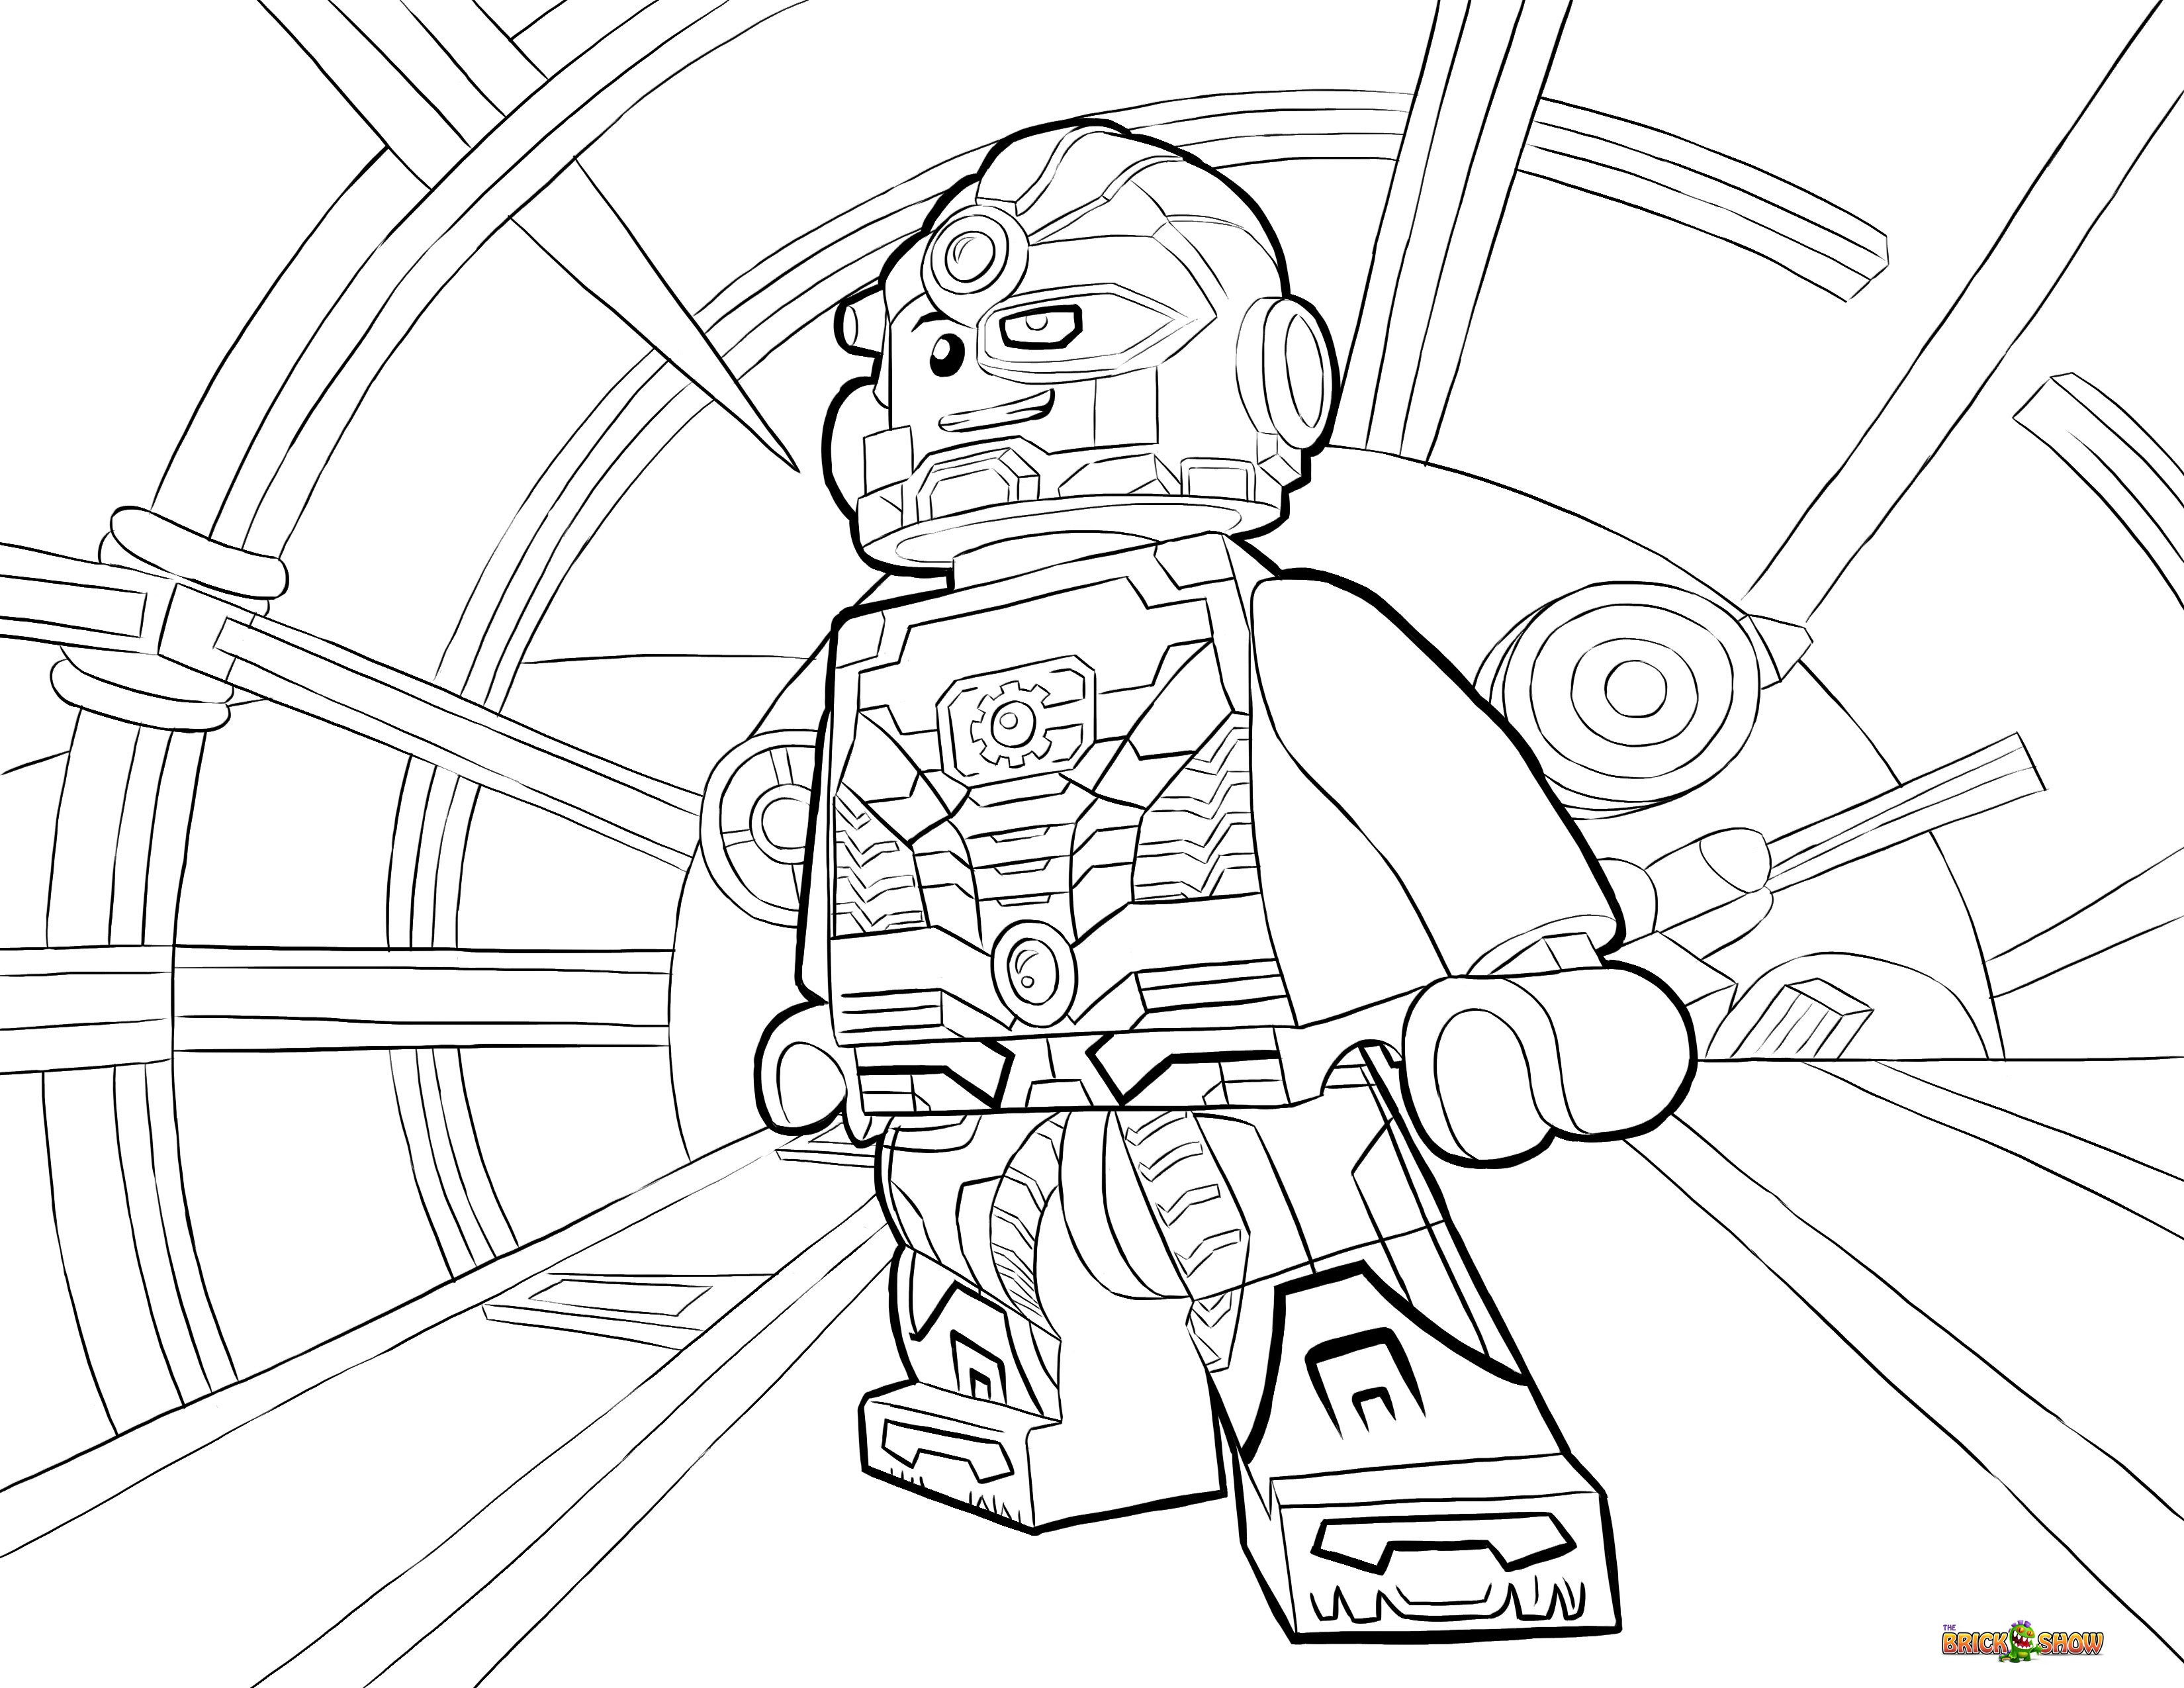 Bridge Coloring Page At Getdrawings Com Free For Personal Use